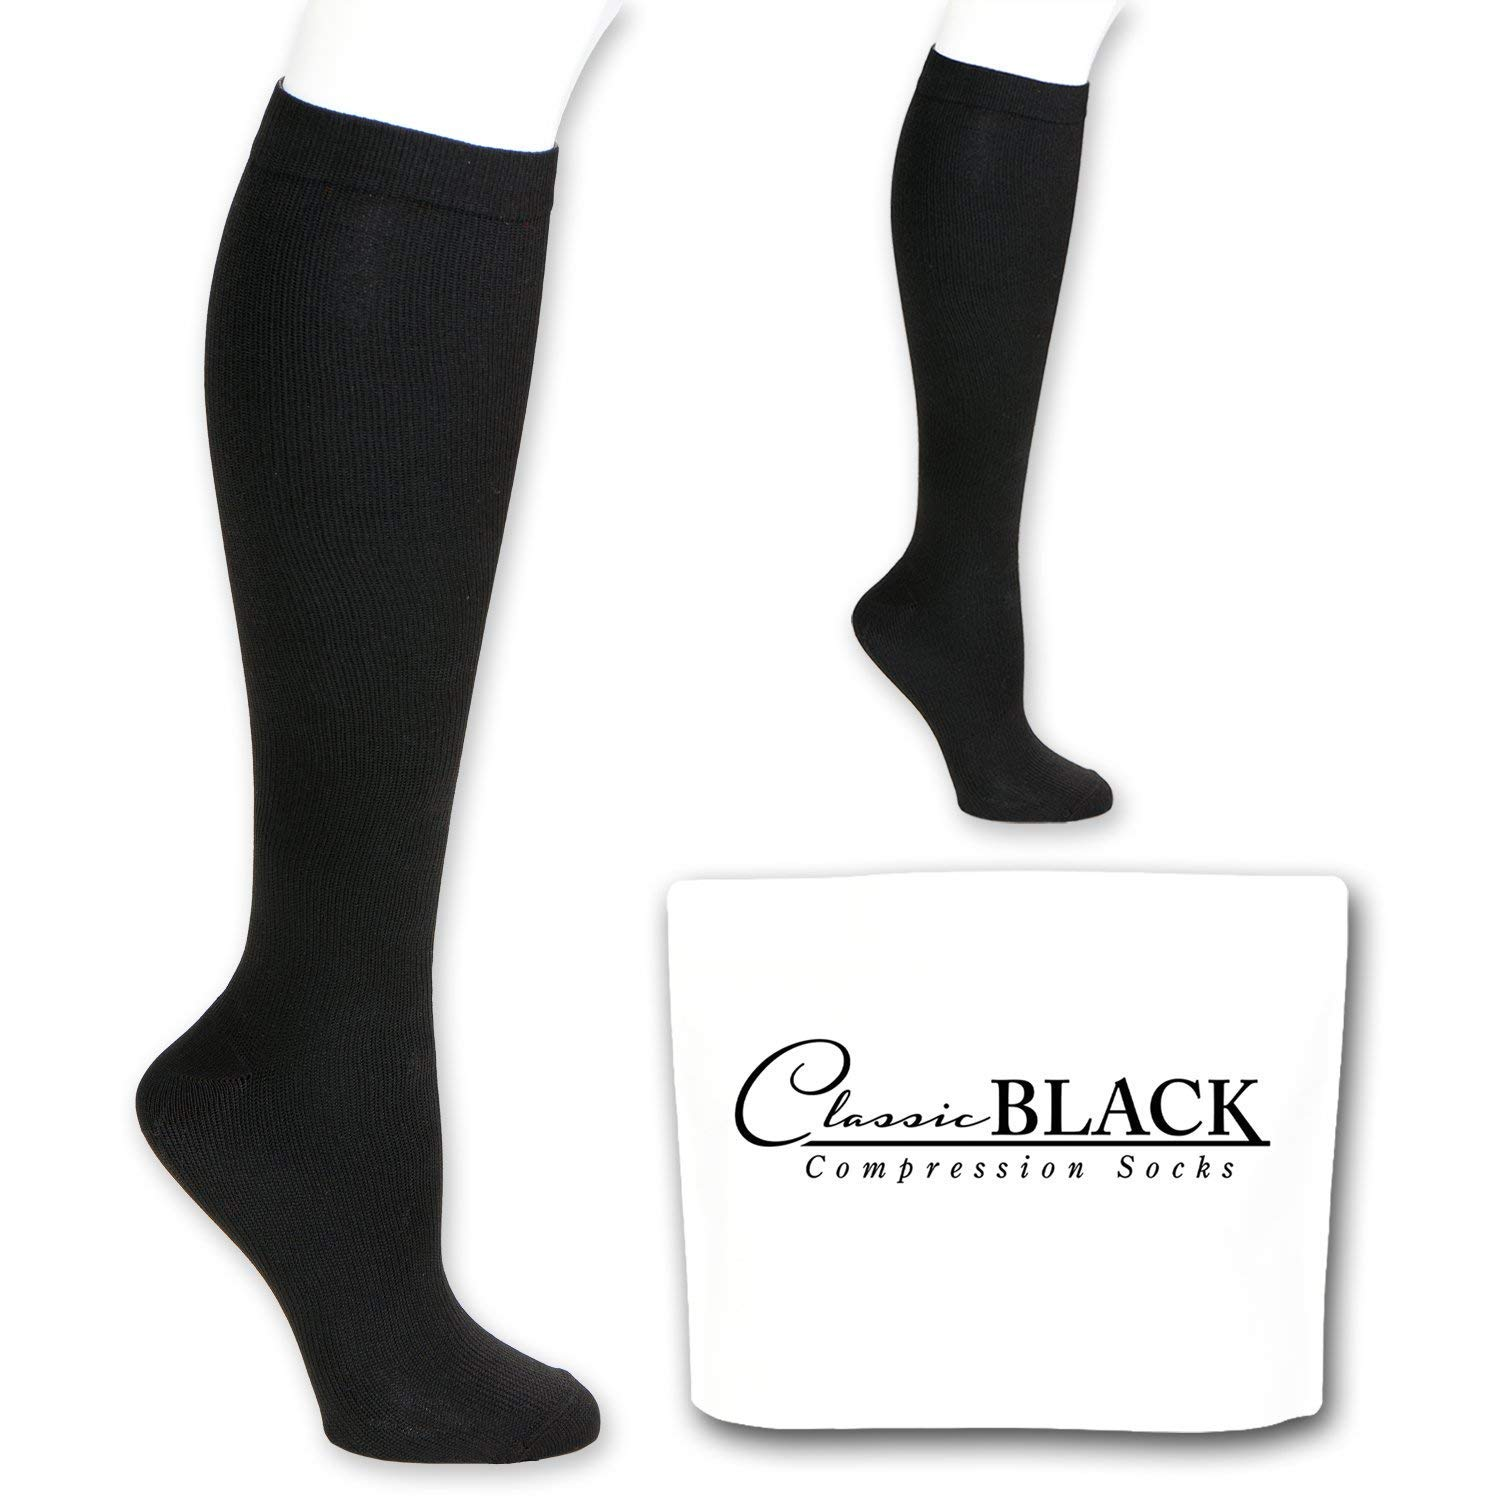 eb1baacfcd Classic Black Knee High Graduated Compression Socks 20-30 mmHg Firm  Pressure Support for Women